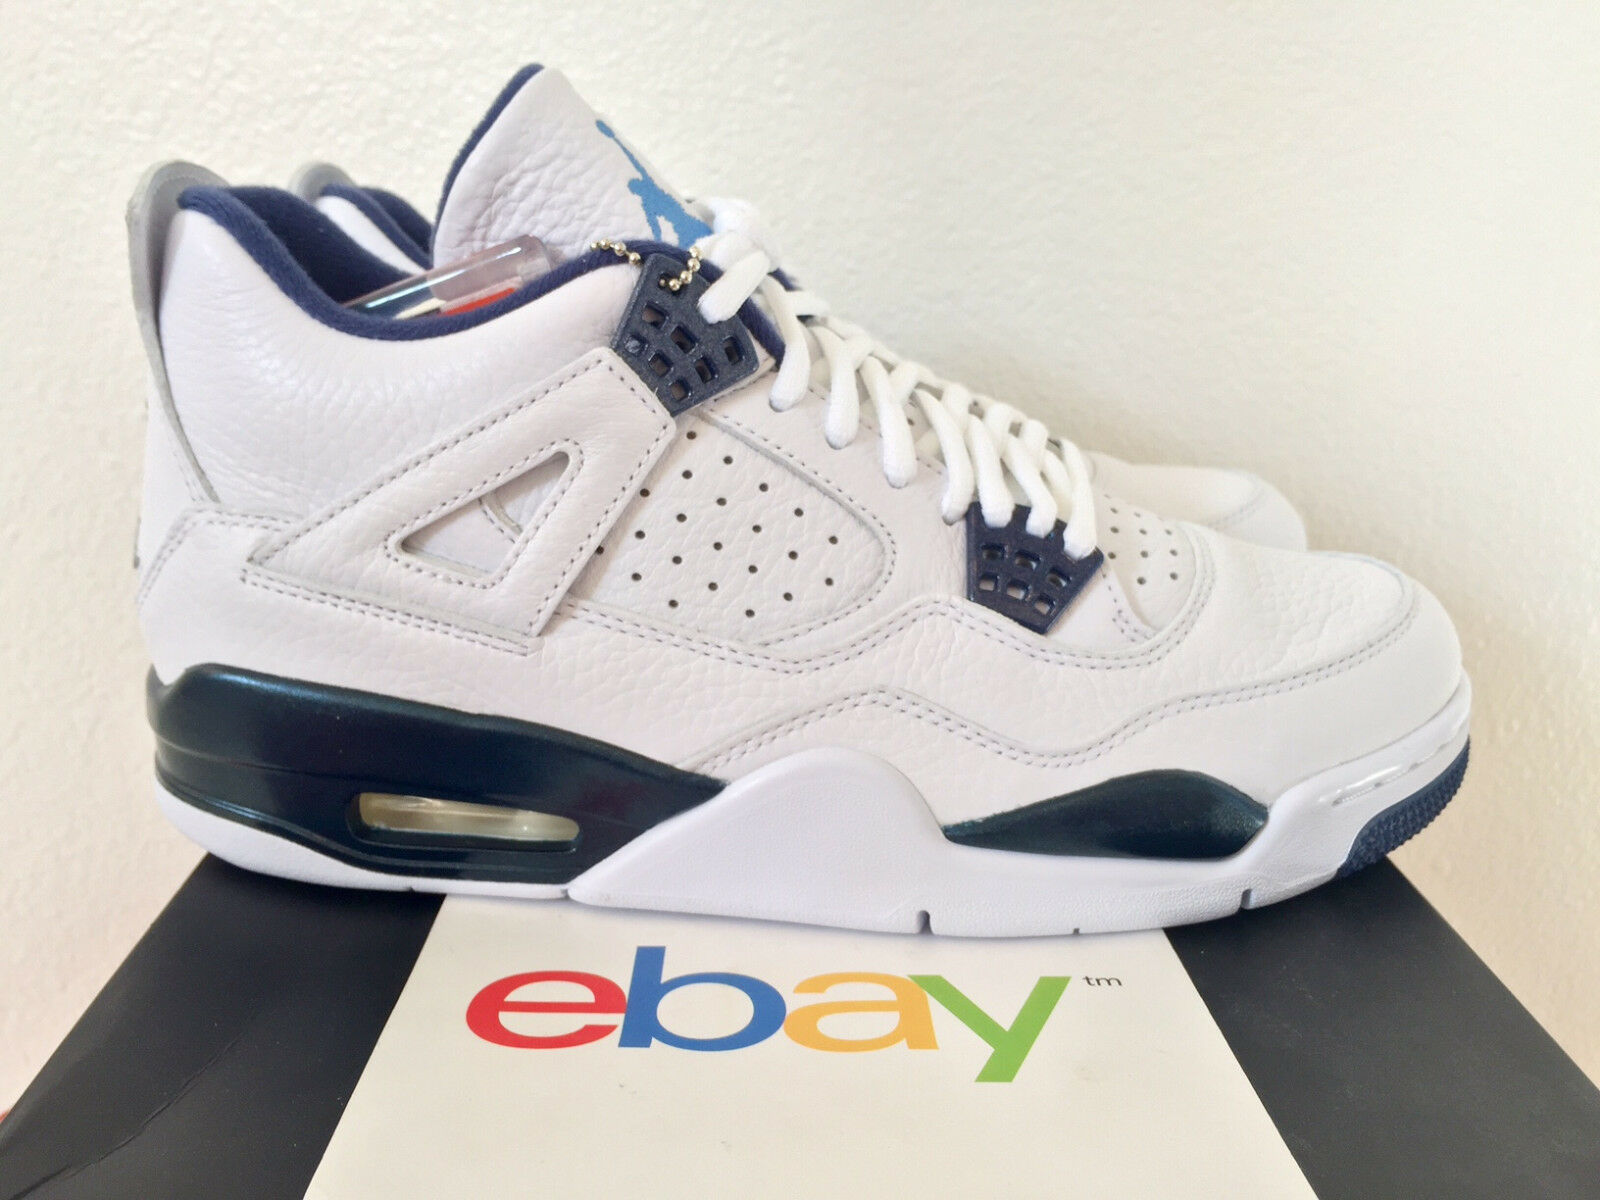 182264956747f7 delicate 2015 DS Air Jordan 4 Retro iv LEGEND BLUE Sizes 8.5-13 columbia  white